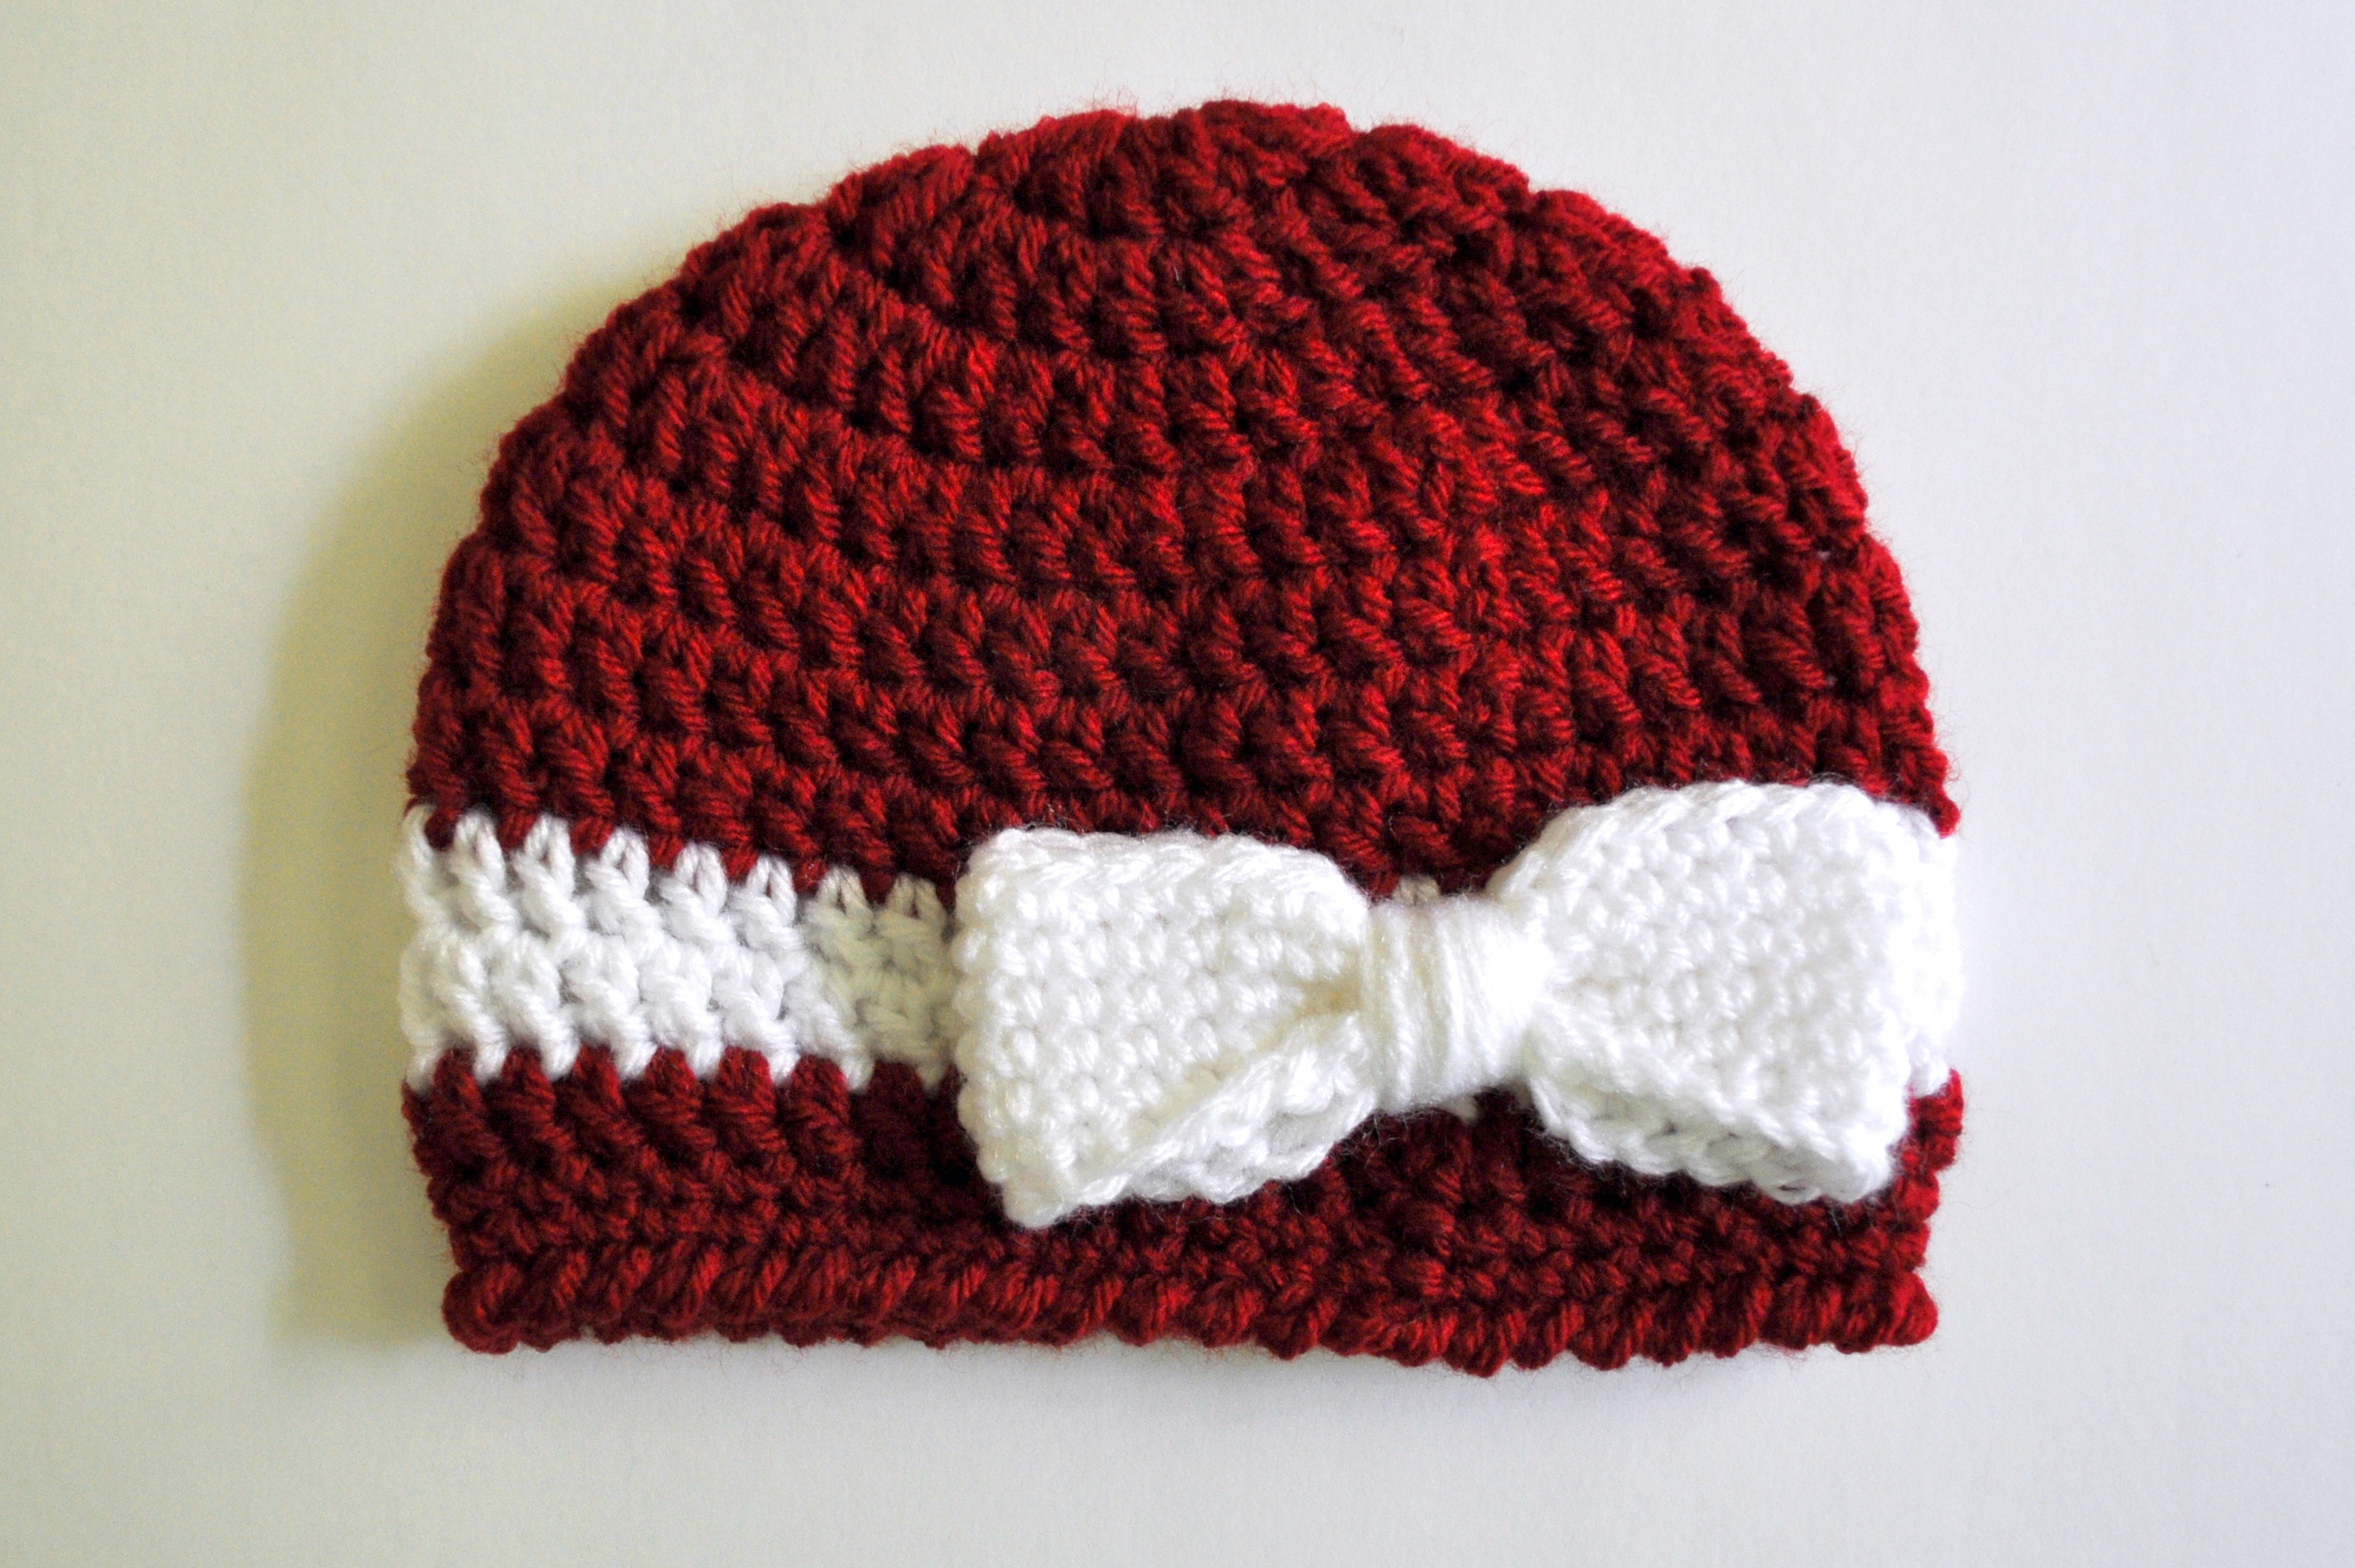 Crochet cap for babies crochet ribbon and bow baby hat pattern | classy crochet GZXASSS